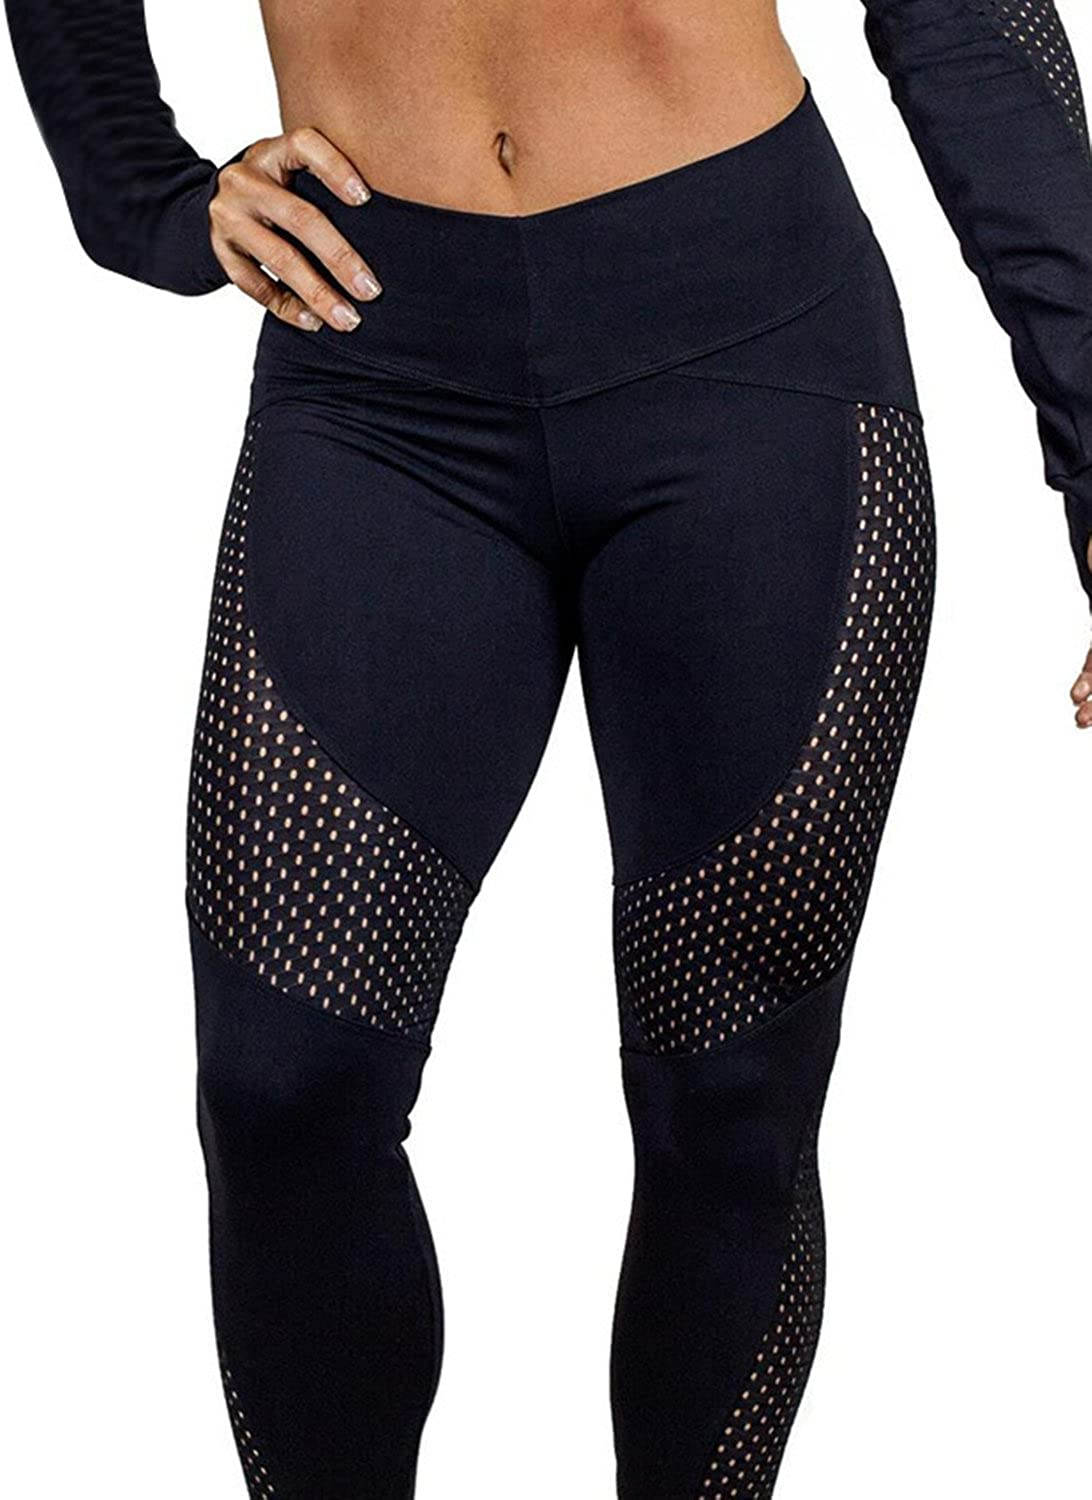 Funy Decor High Waisted Workout Leggings Athletic Gym Running Workout Fitness Yoga Capris Pants